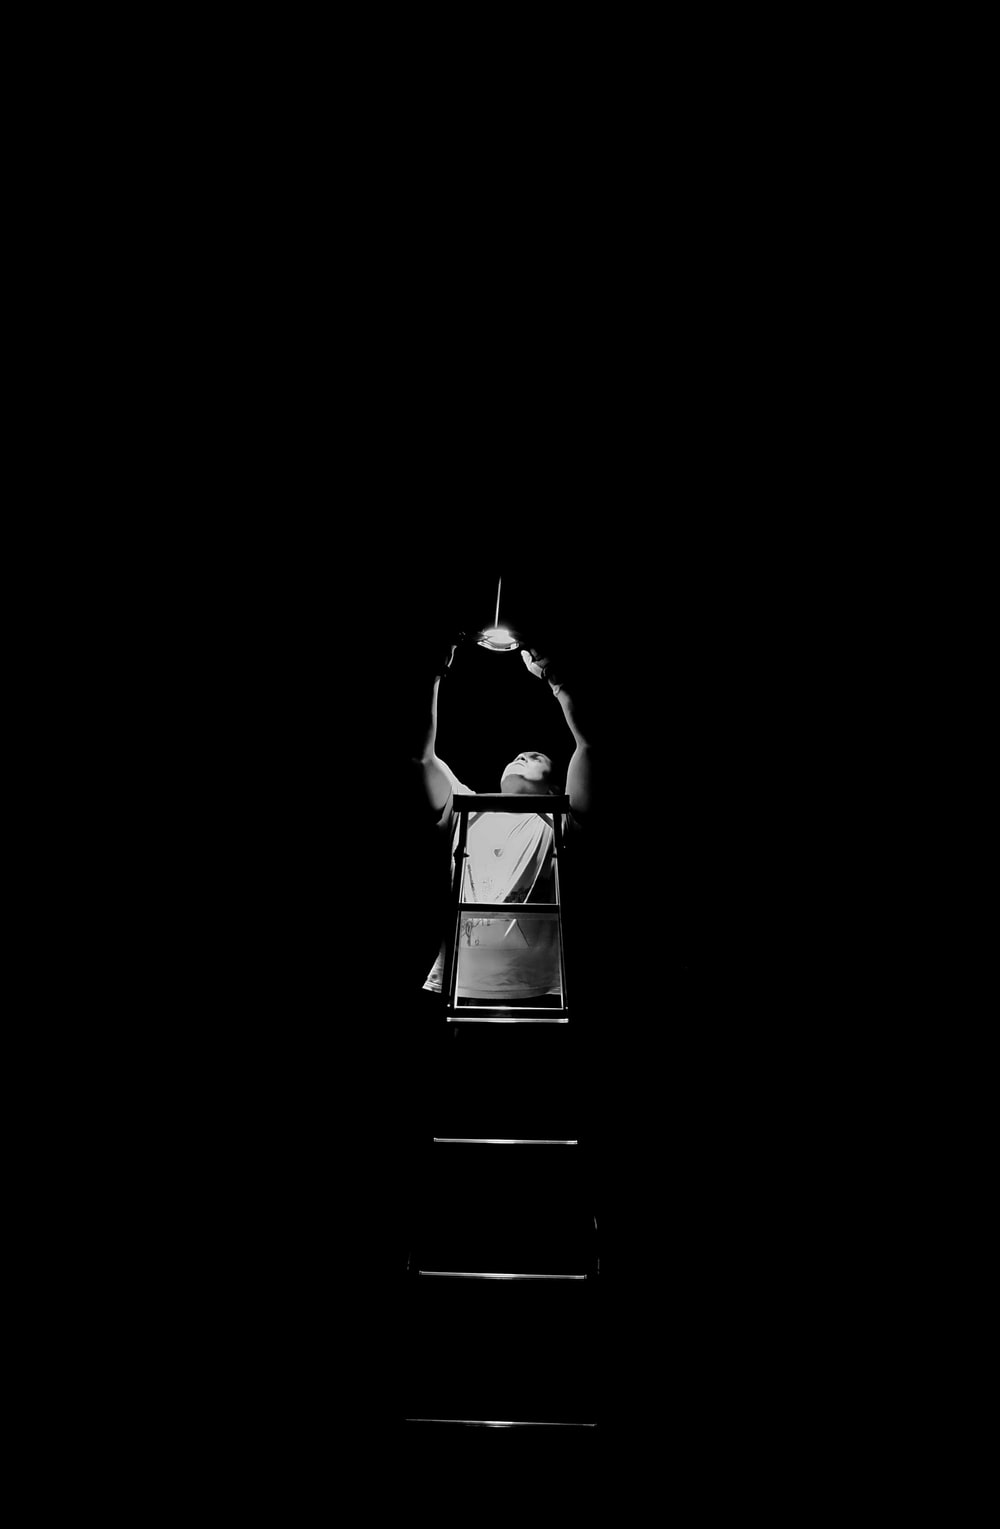 grayscale photography of man climbing ladder fixing the lights